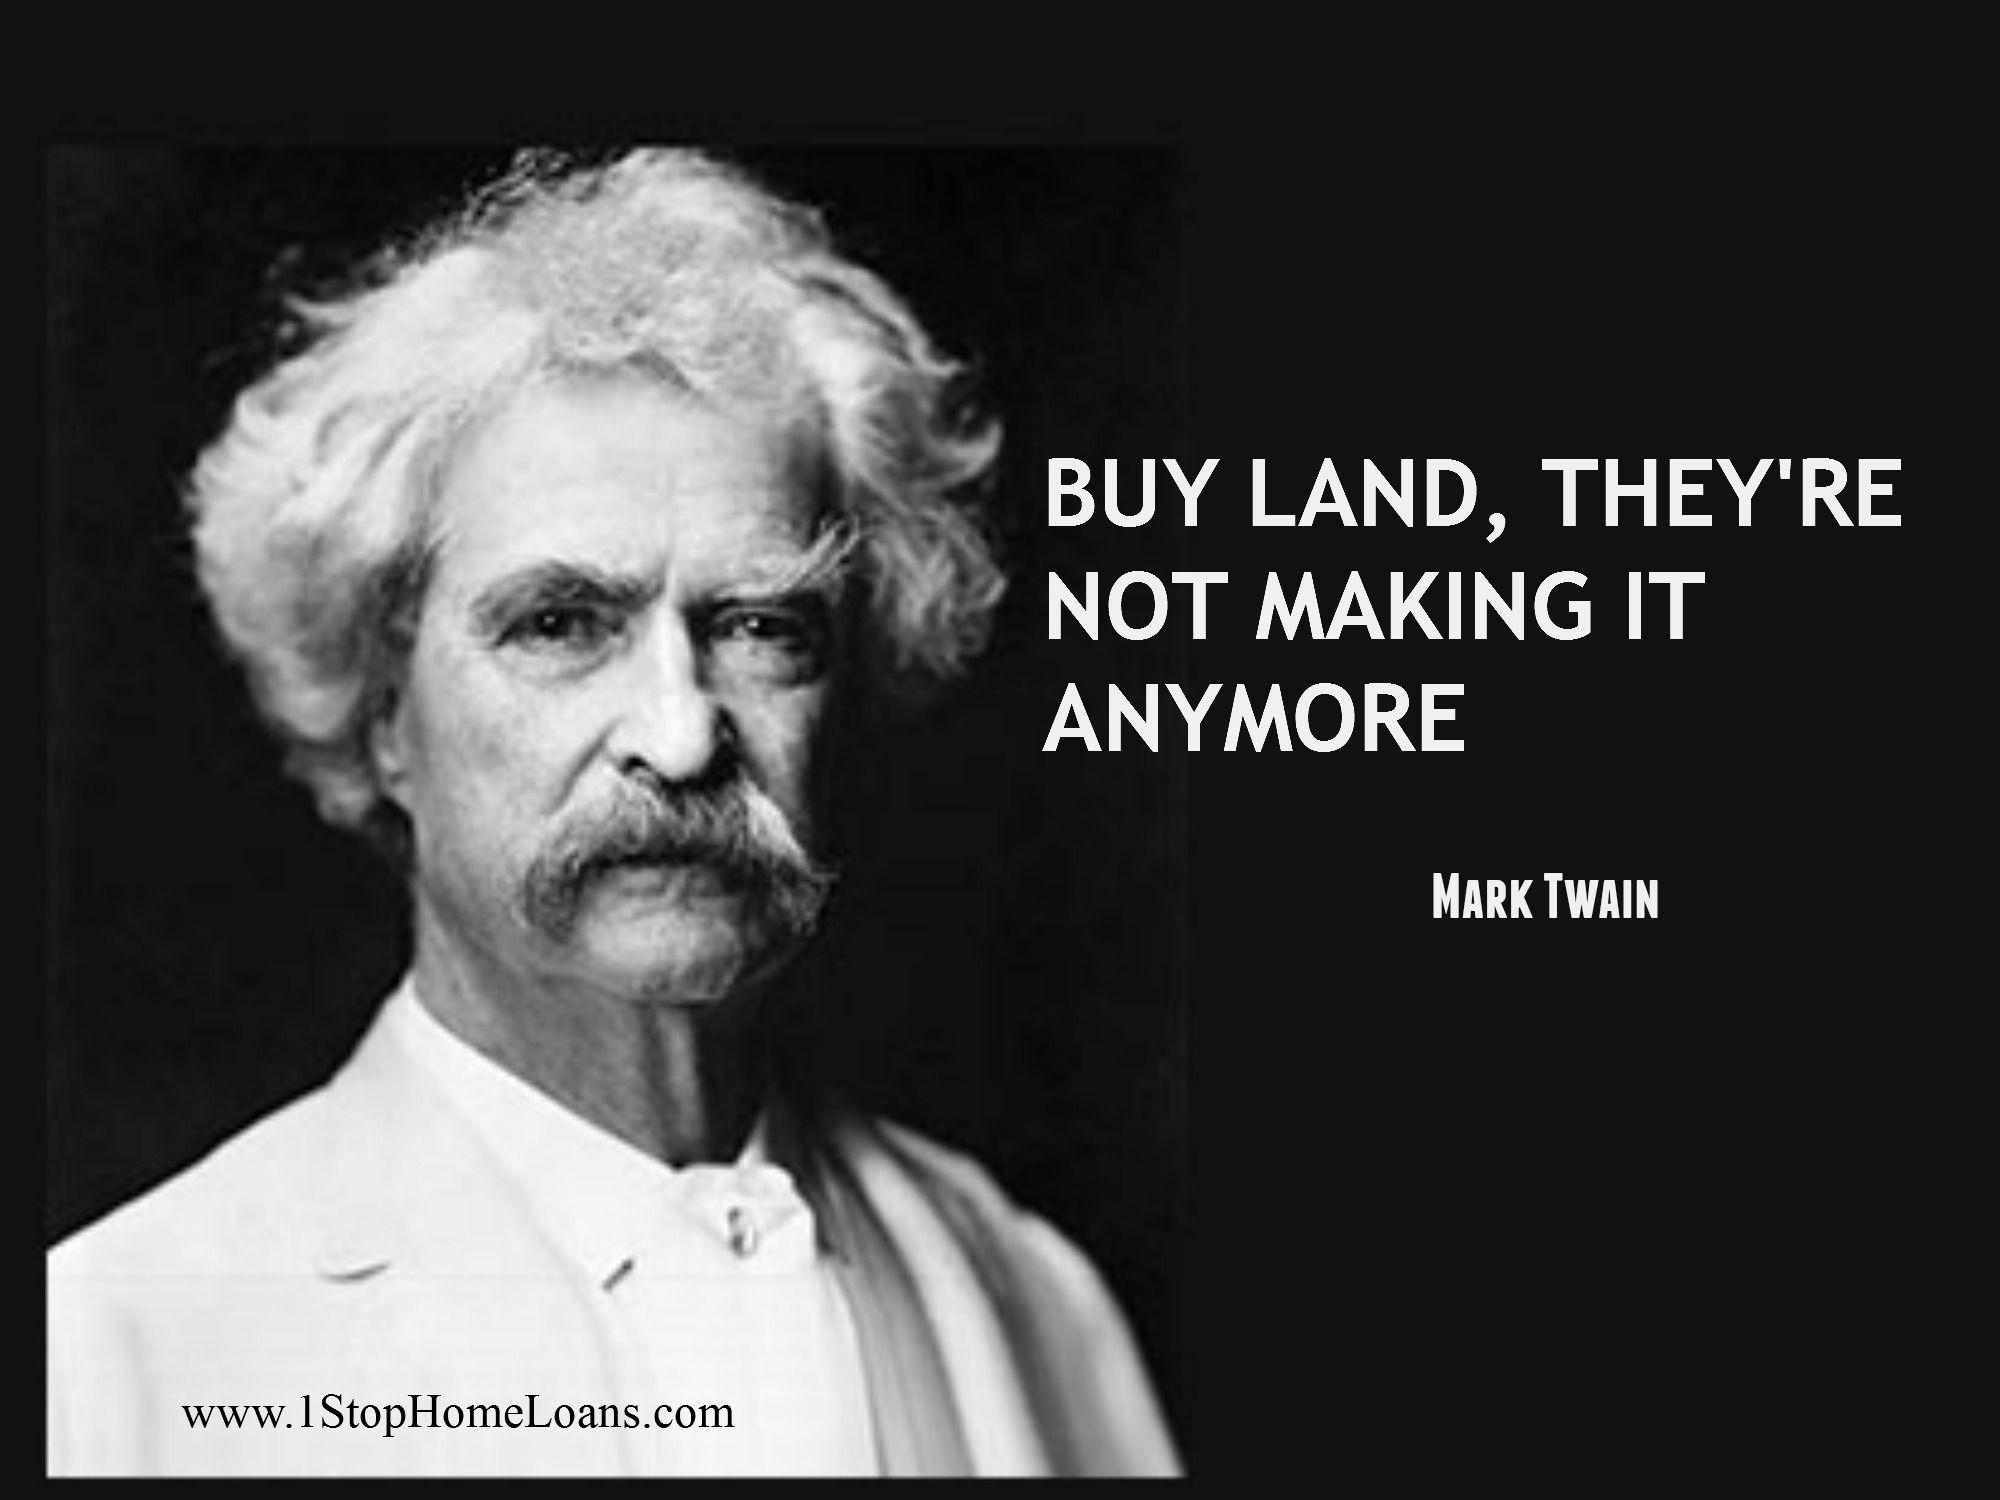 Mark Twain Quote Mark Twain Mark Twain Quotes Historical Quotes Witty Quotes